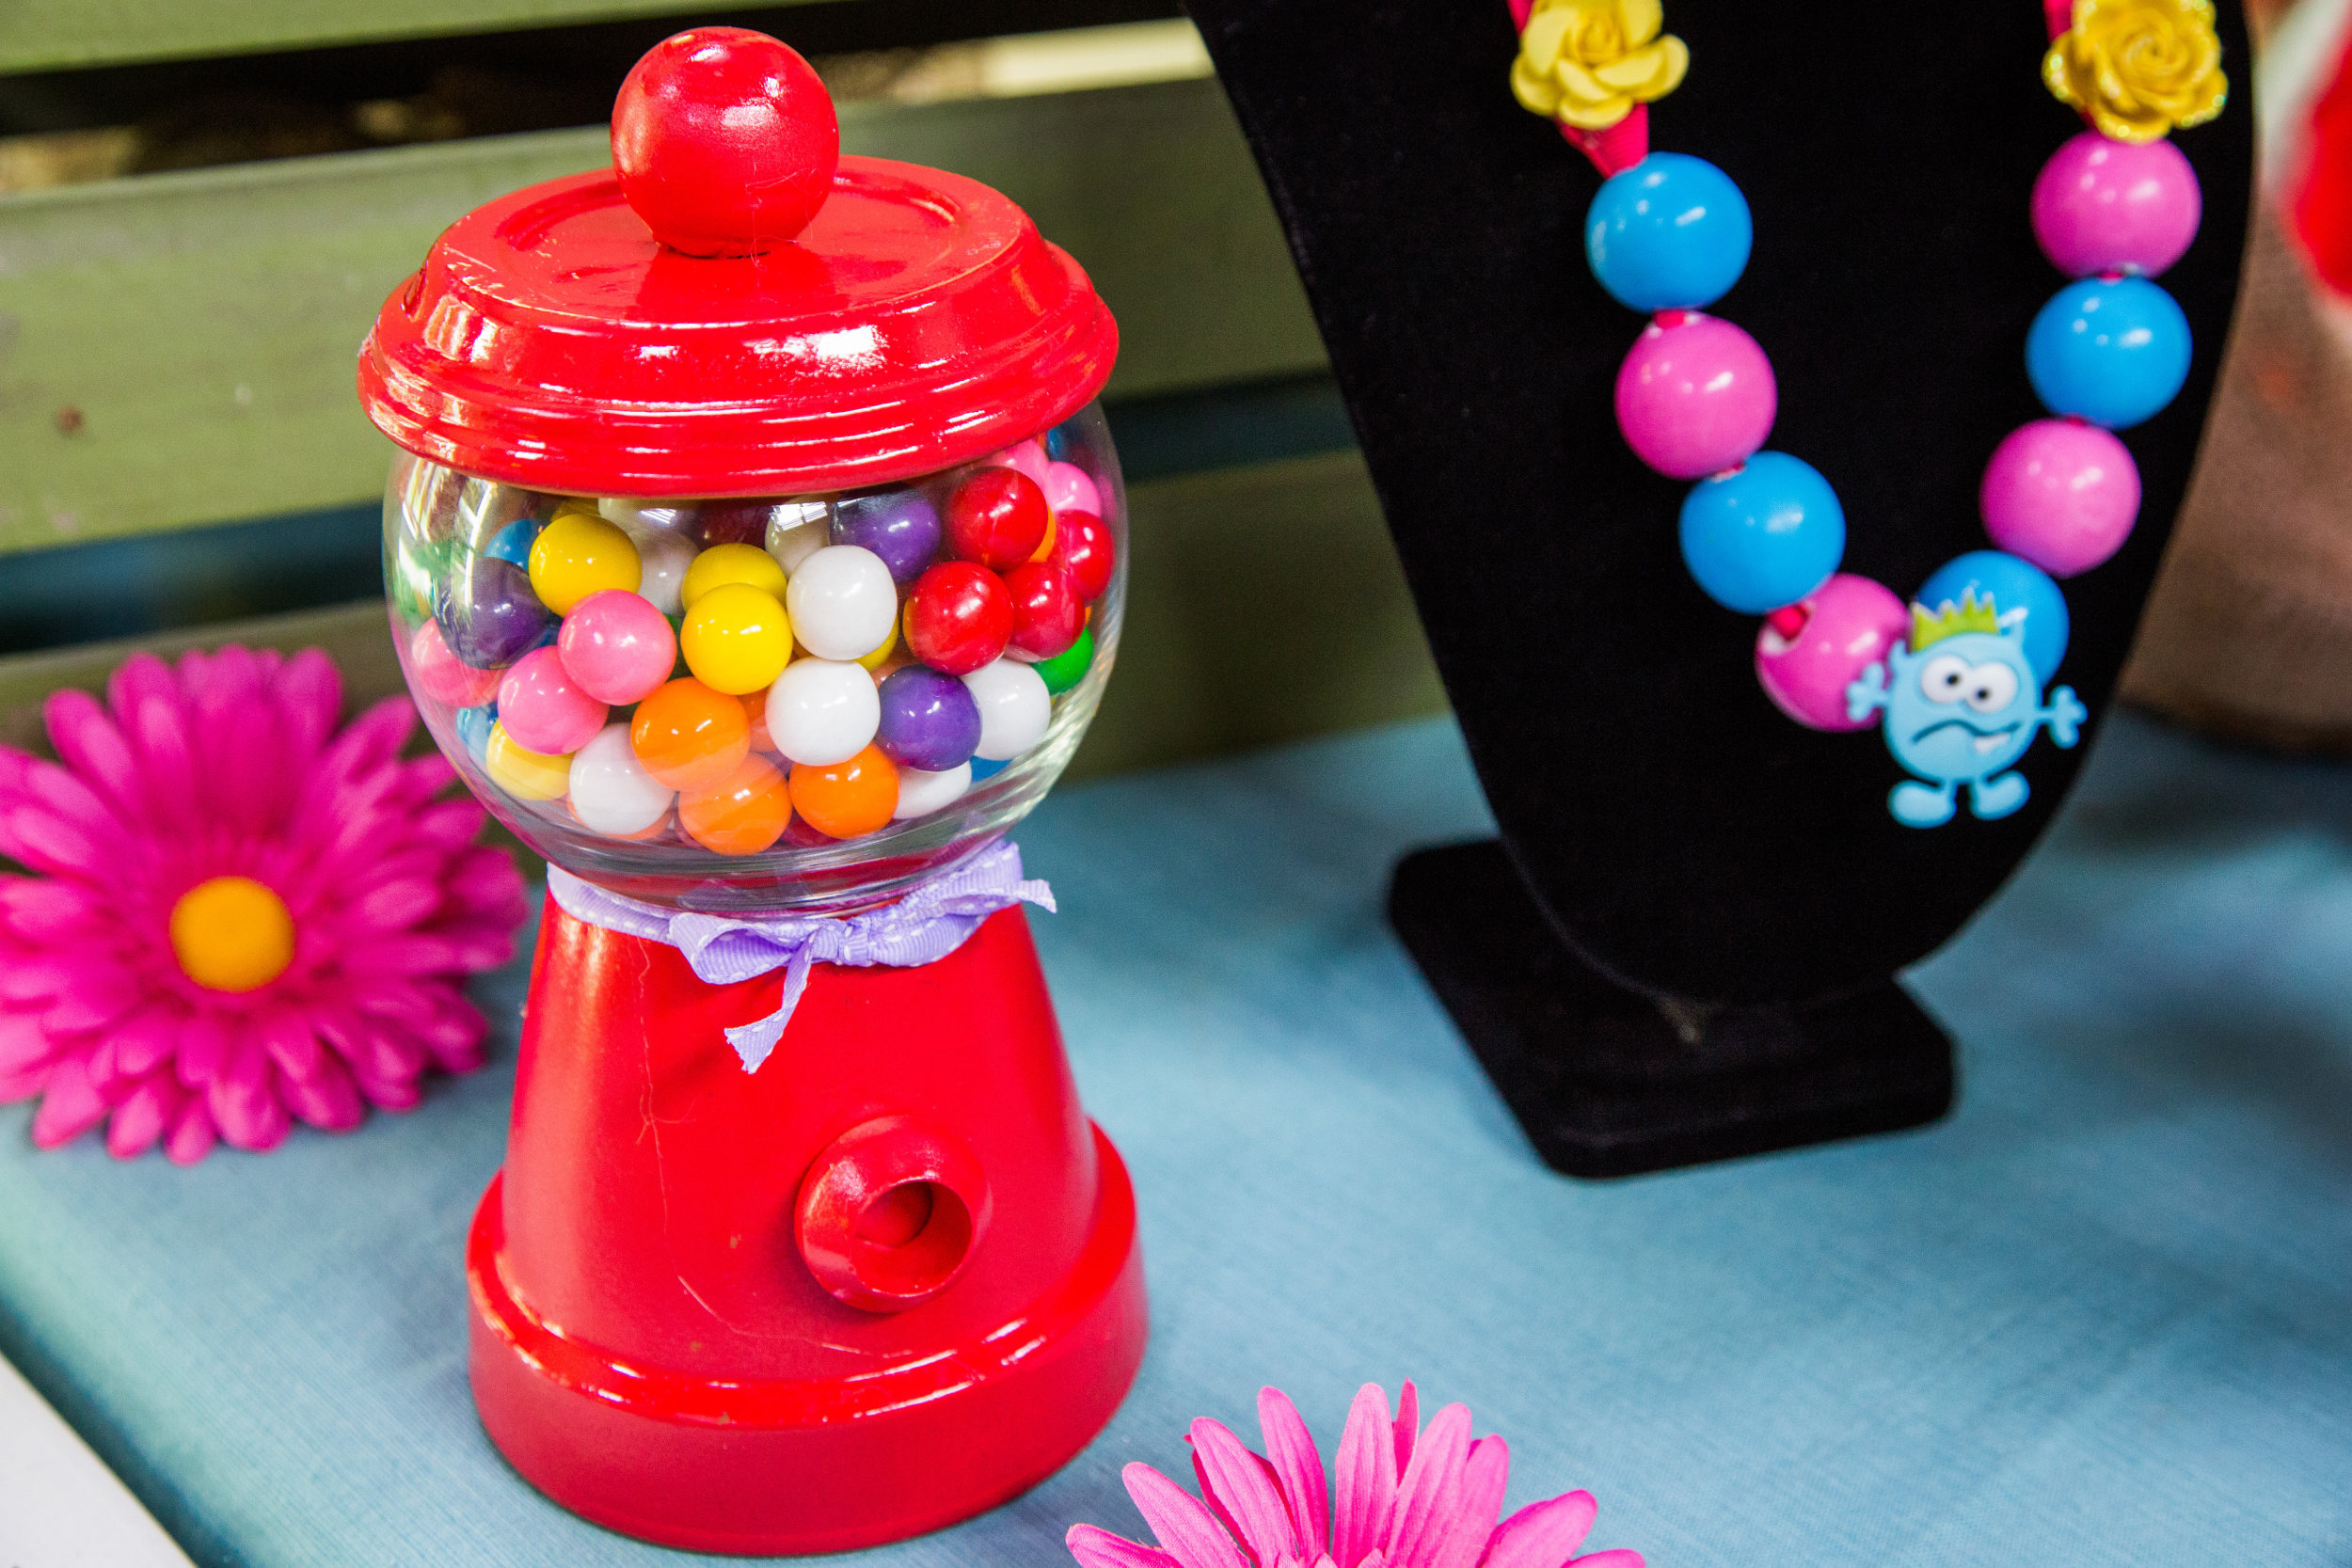 Diy Gumball Machine Home Amp Family Hallmark Channel